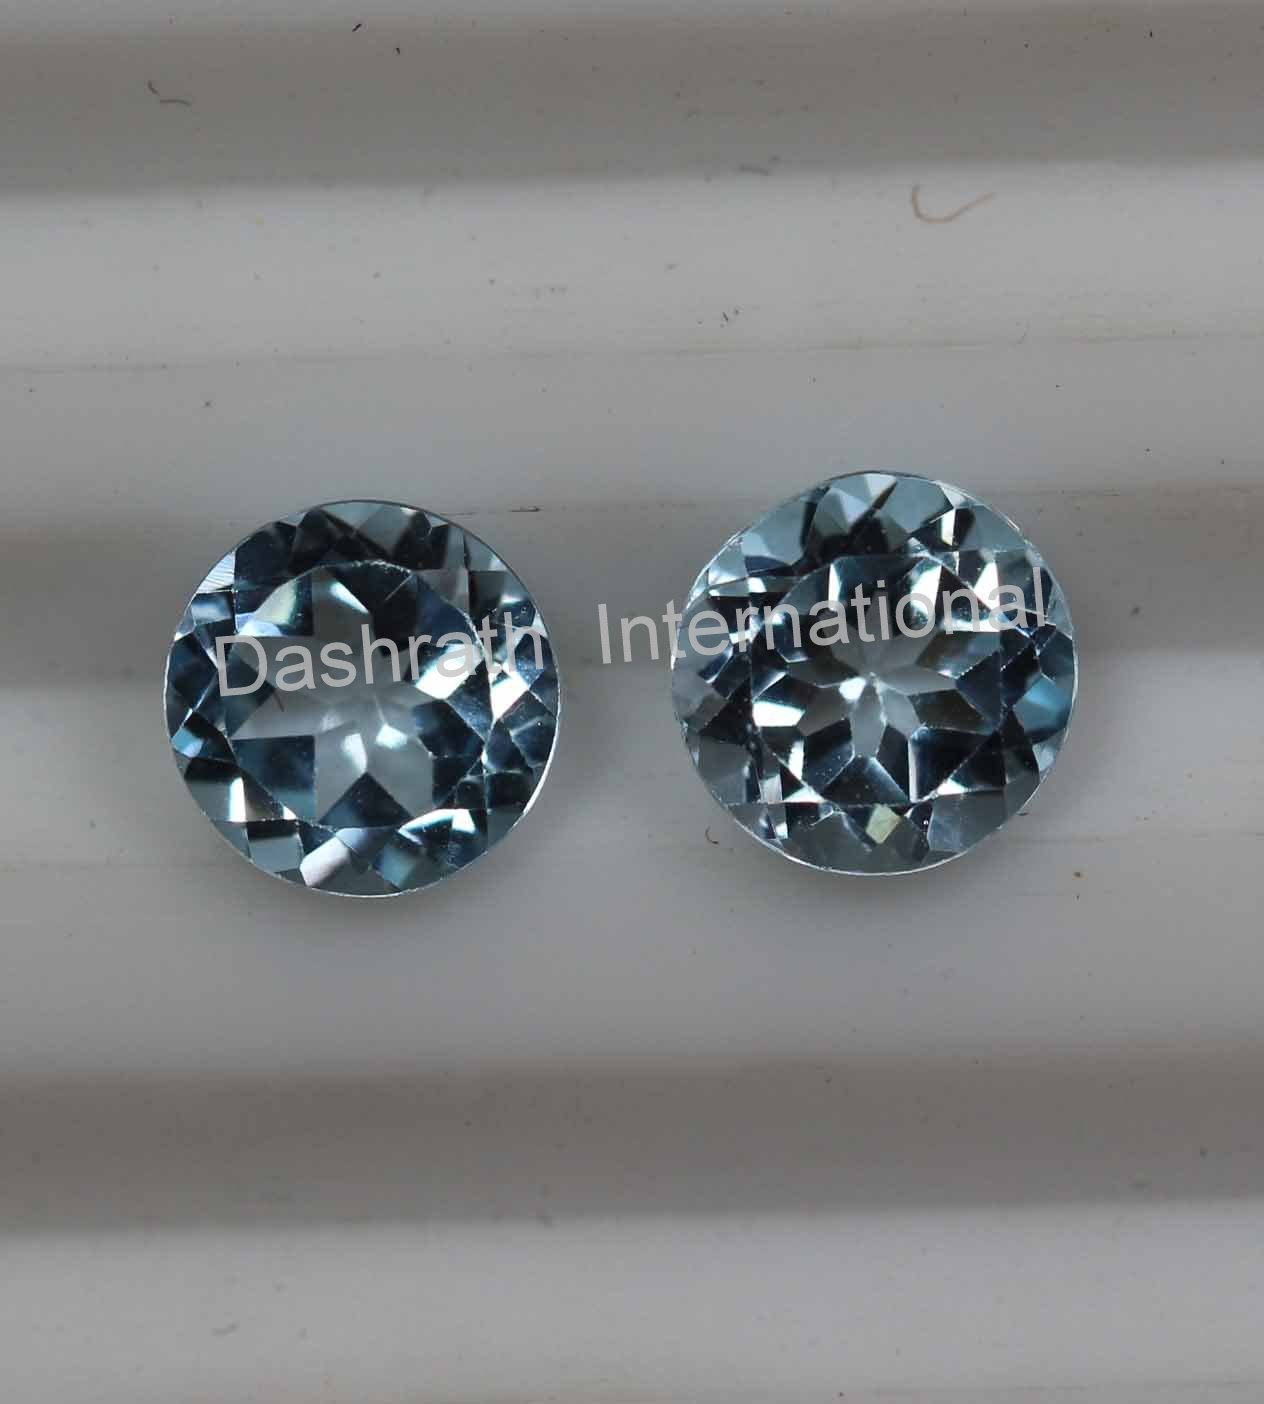 8mmNatural Sky Blue Topaz Faceted Cut Round 10 Pieces Lot Blue Color  Top Quality Loose Gemstone